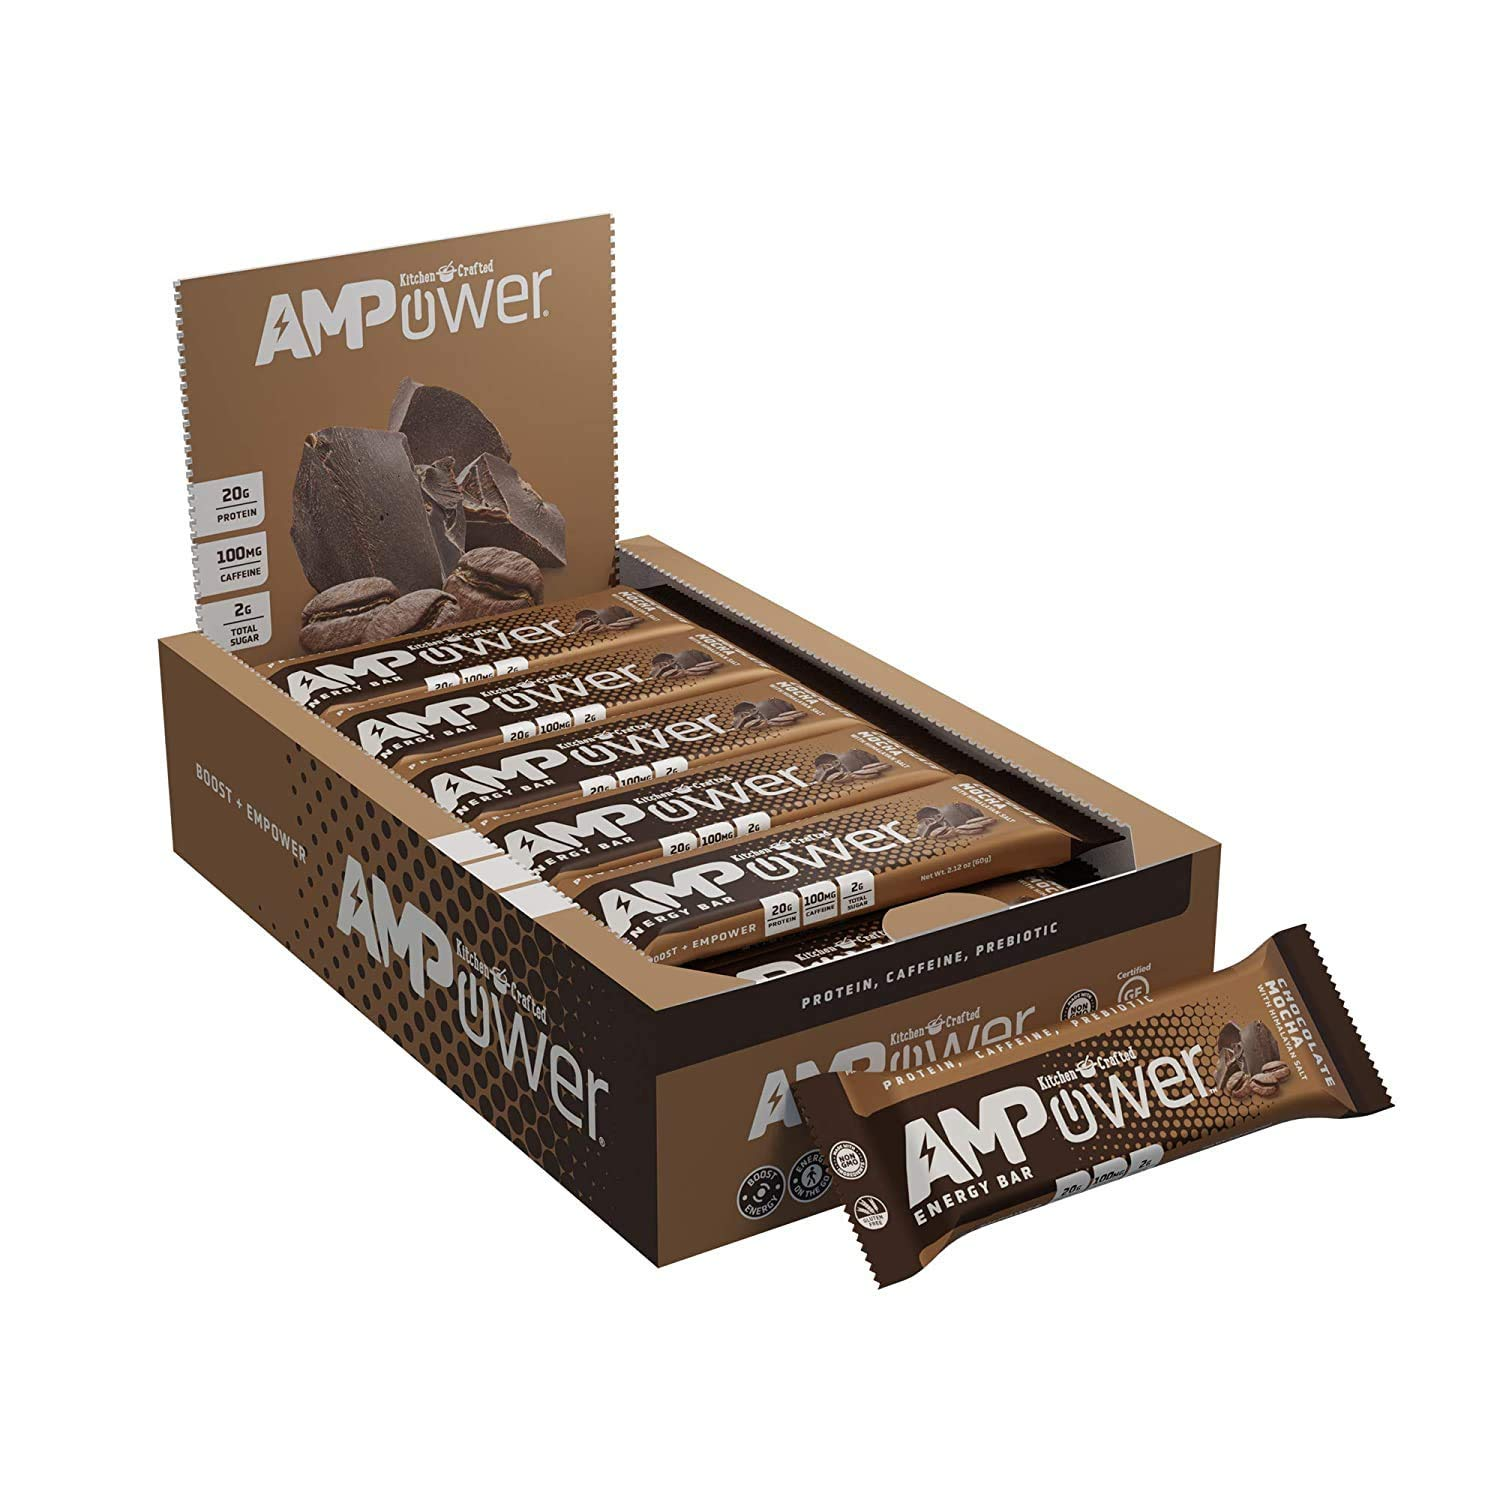 AMPower Energy Bars – High Protein (20g), Caffeine (1 Cup Of Coffee), Prebiotics, Low Sugar - Perfect for Pre-Workouts, Running, Cycling, Fitness Enthusiasts. Great Healthy Nutritious Snacks for Morning Boost or Meal Replacement (Pack of 12)